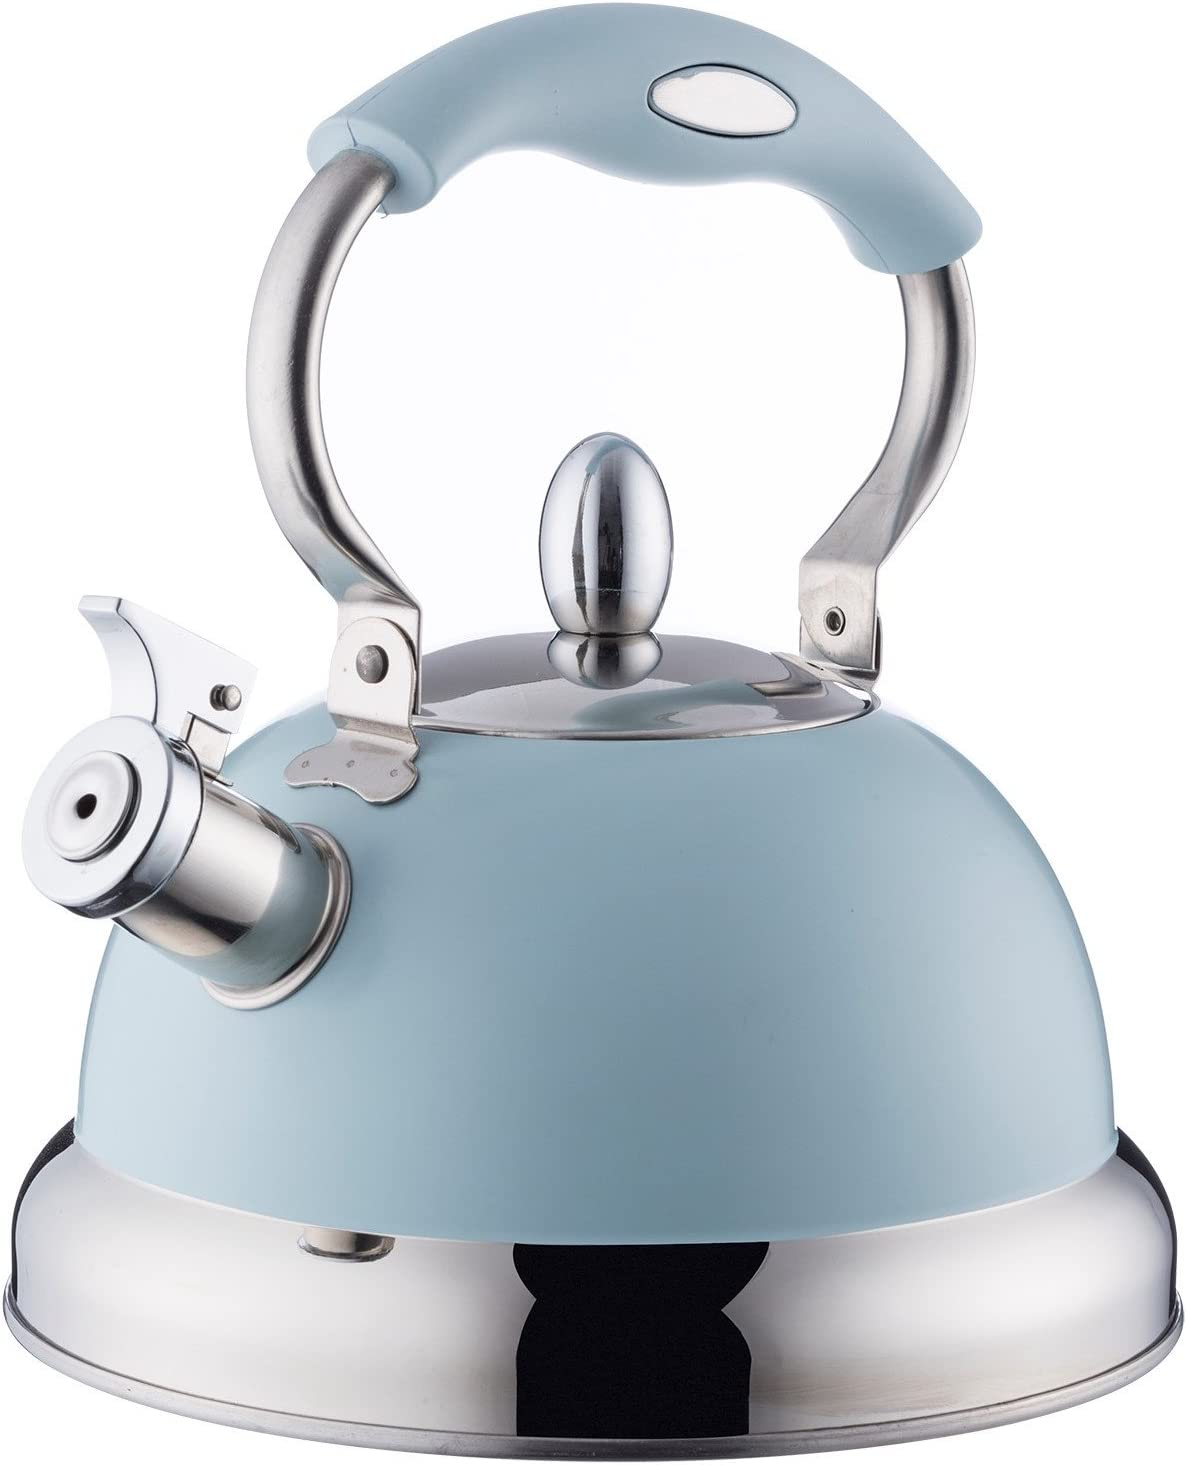 Typhoon Living Stovetop Whistling Kettle with Folding Handle, 2.5 Litre, Blue